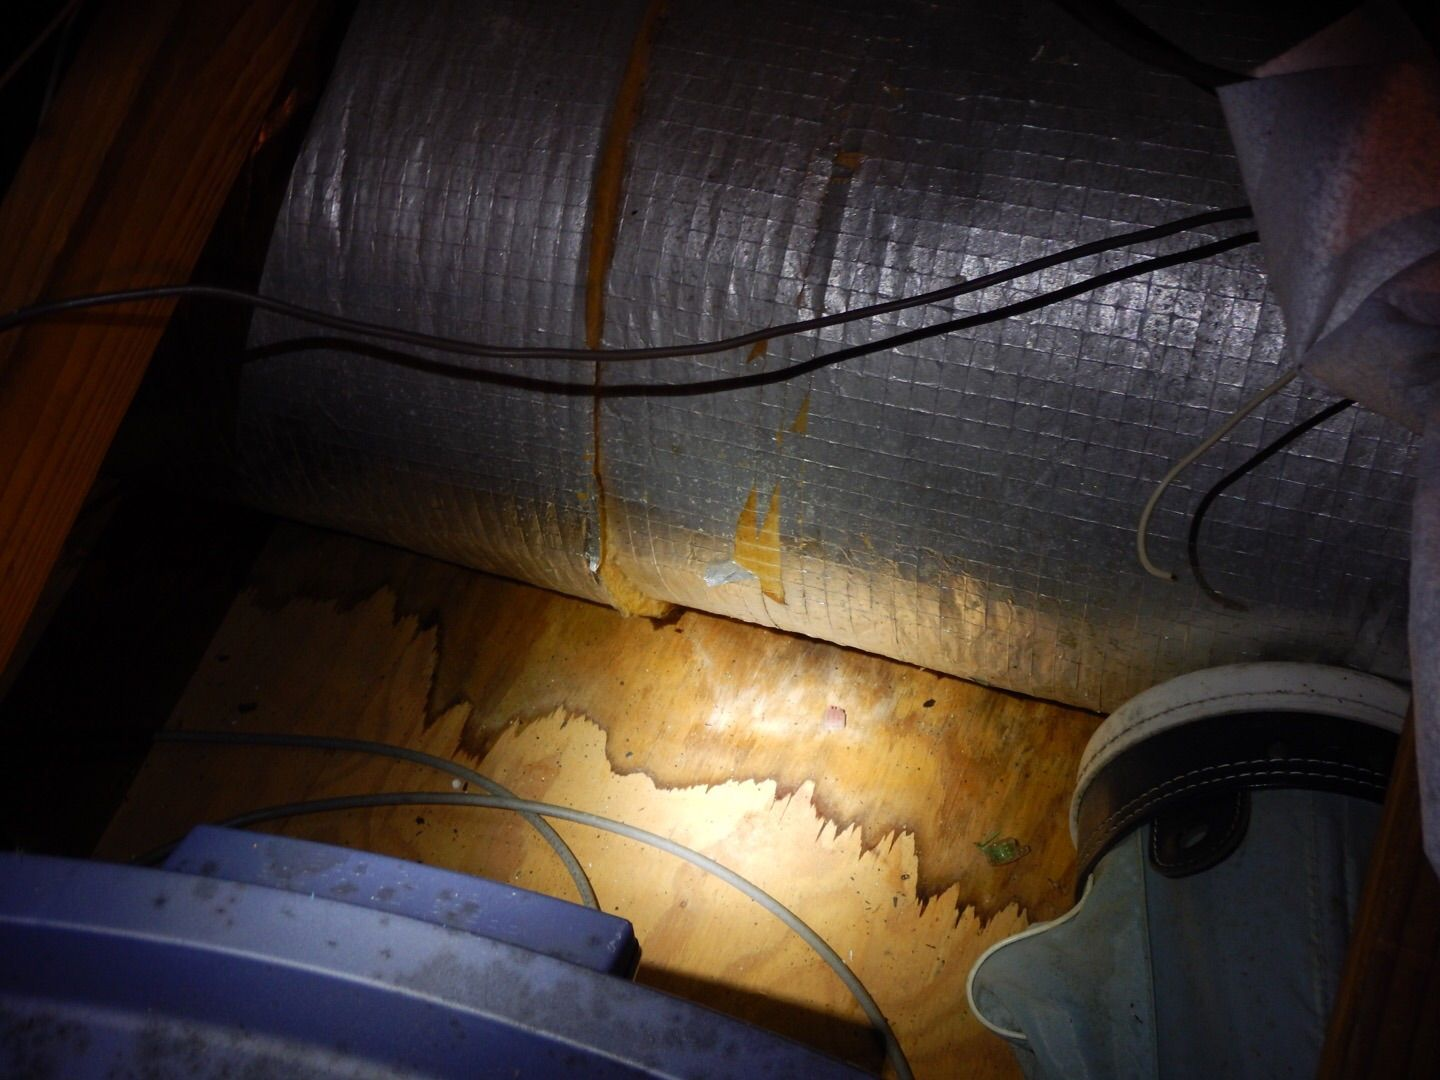 Here is an example of air conditioning ductwork that is